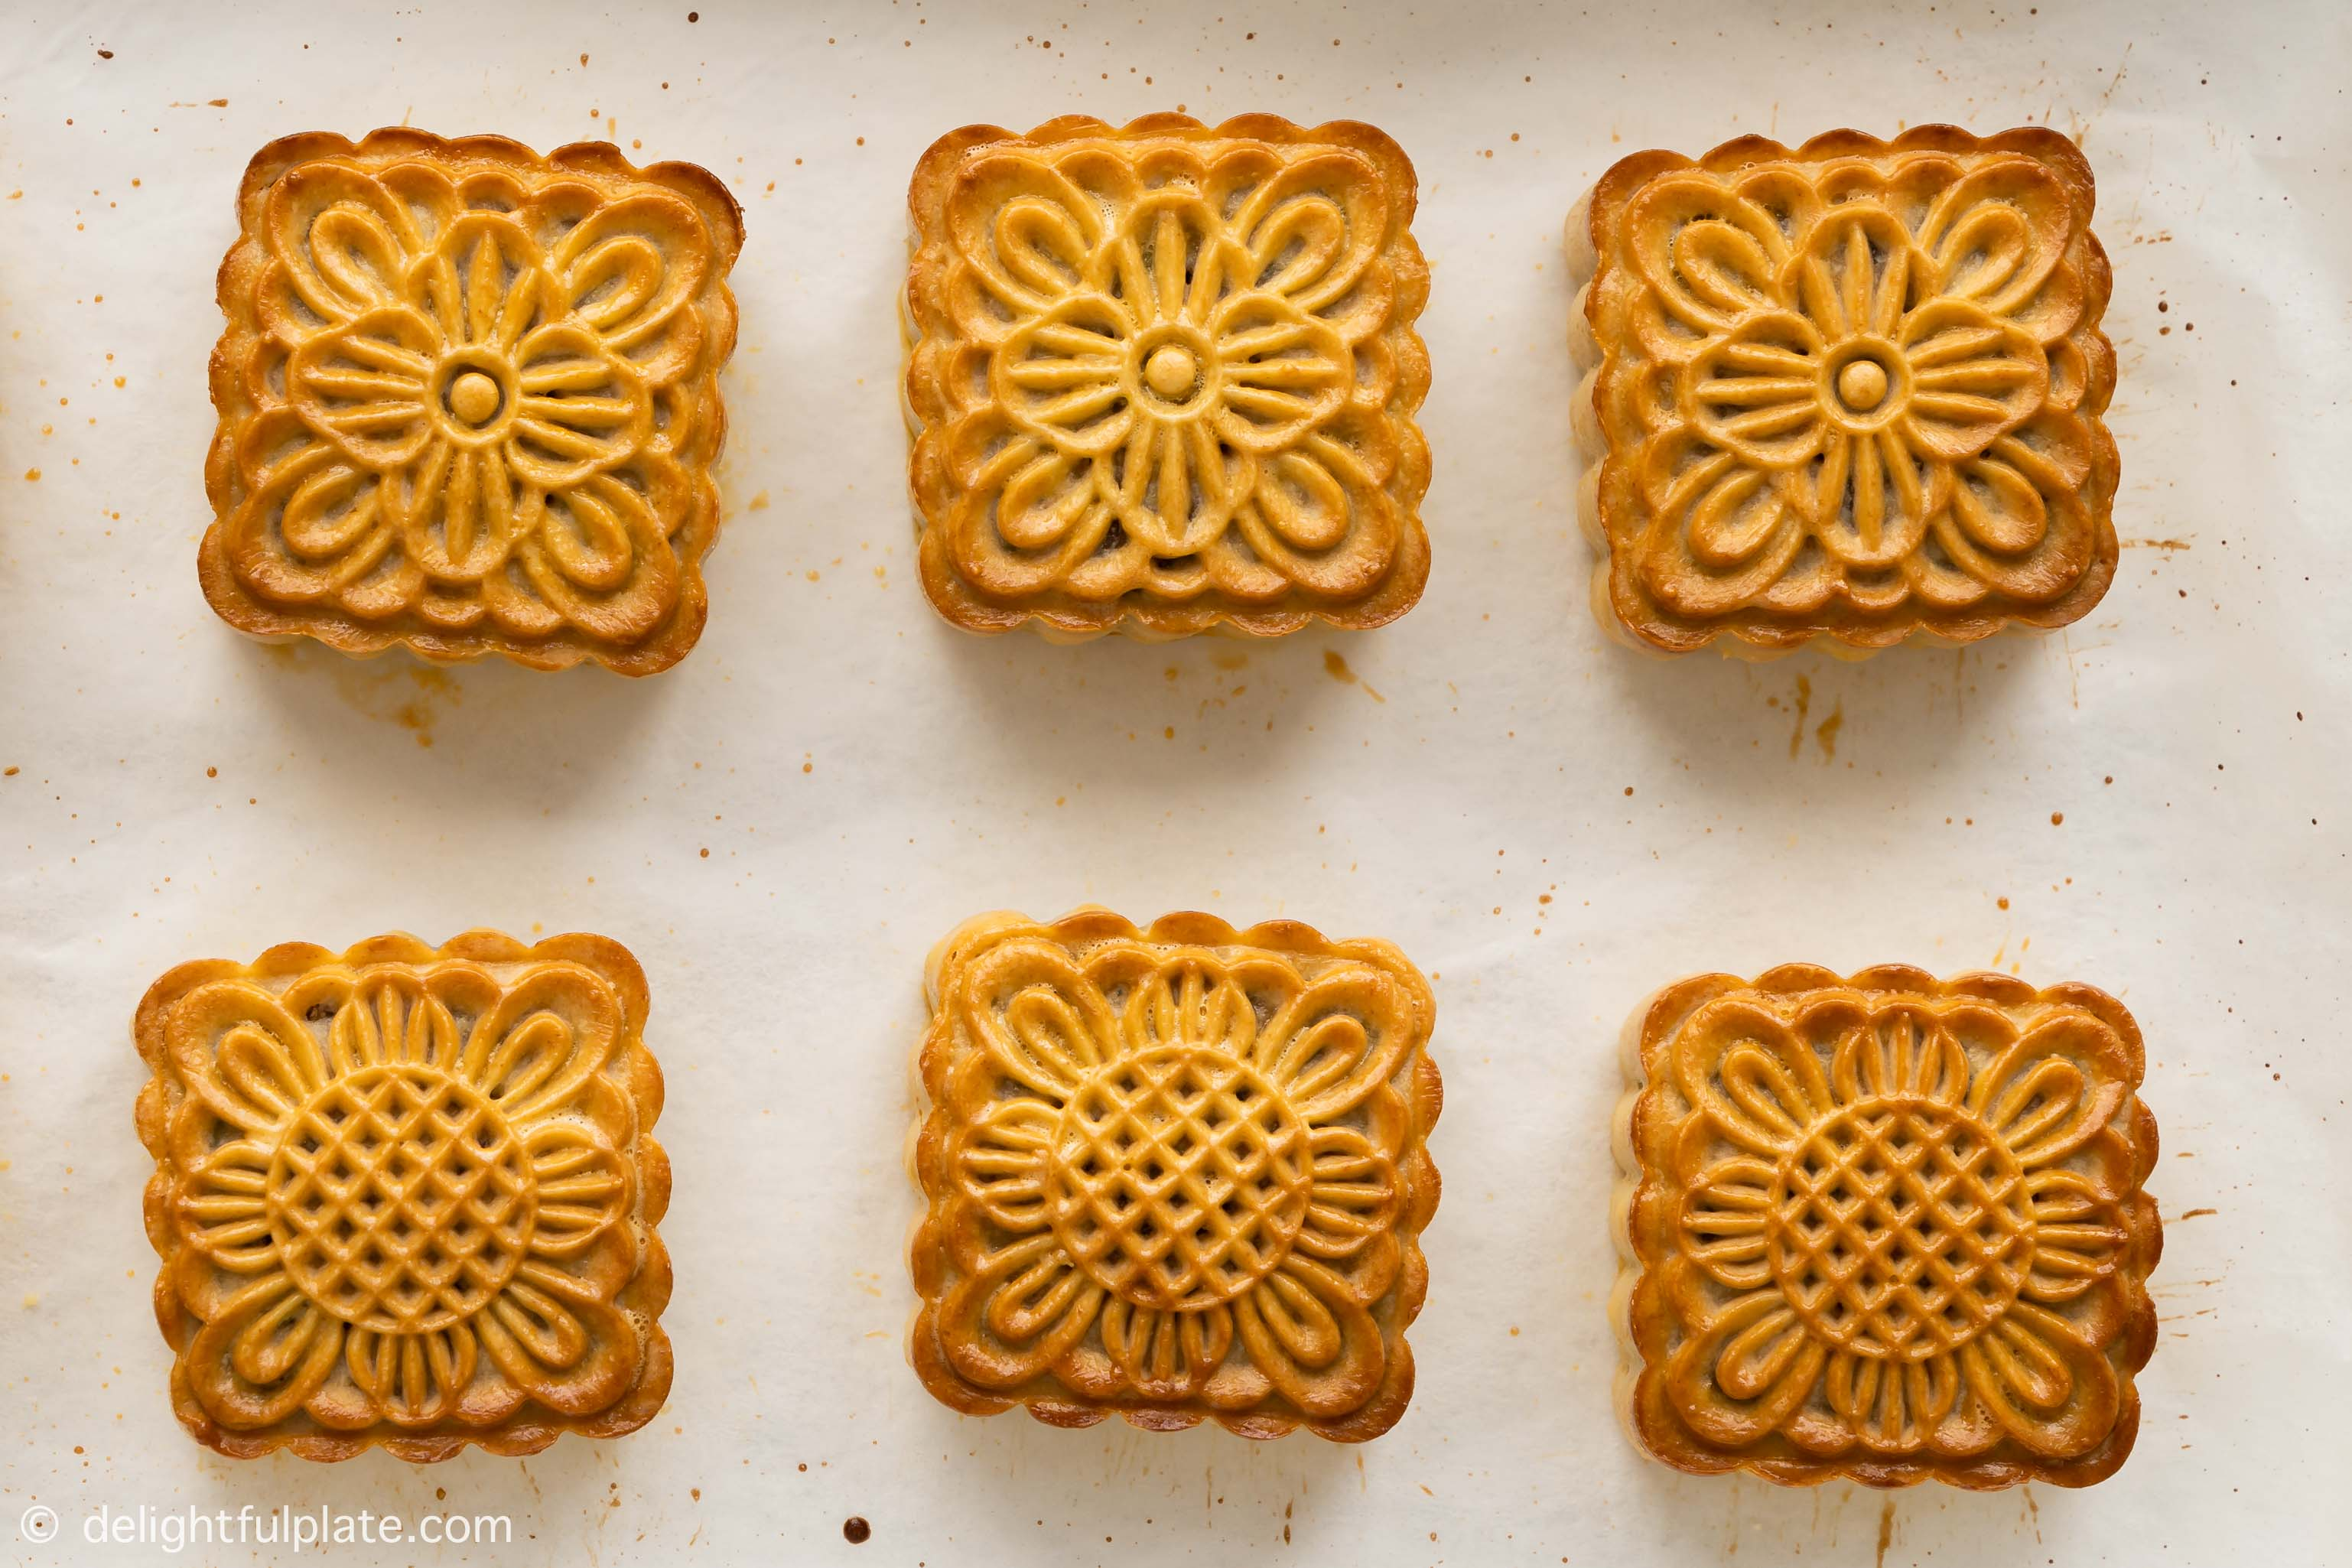 freshly baked mooncakes